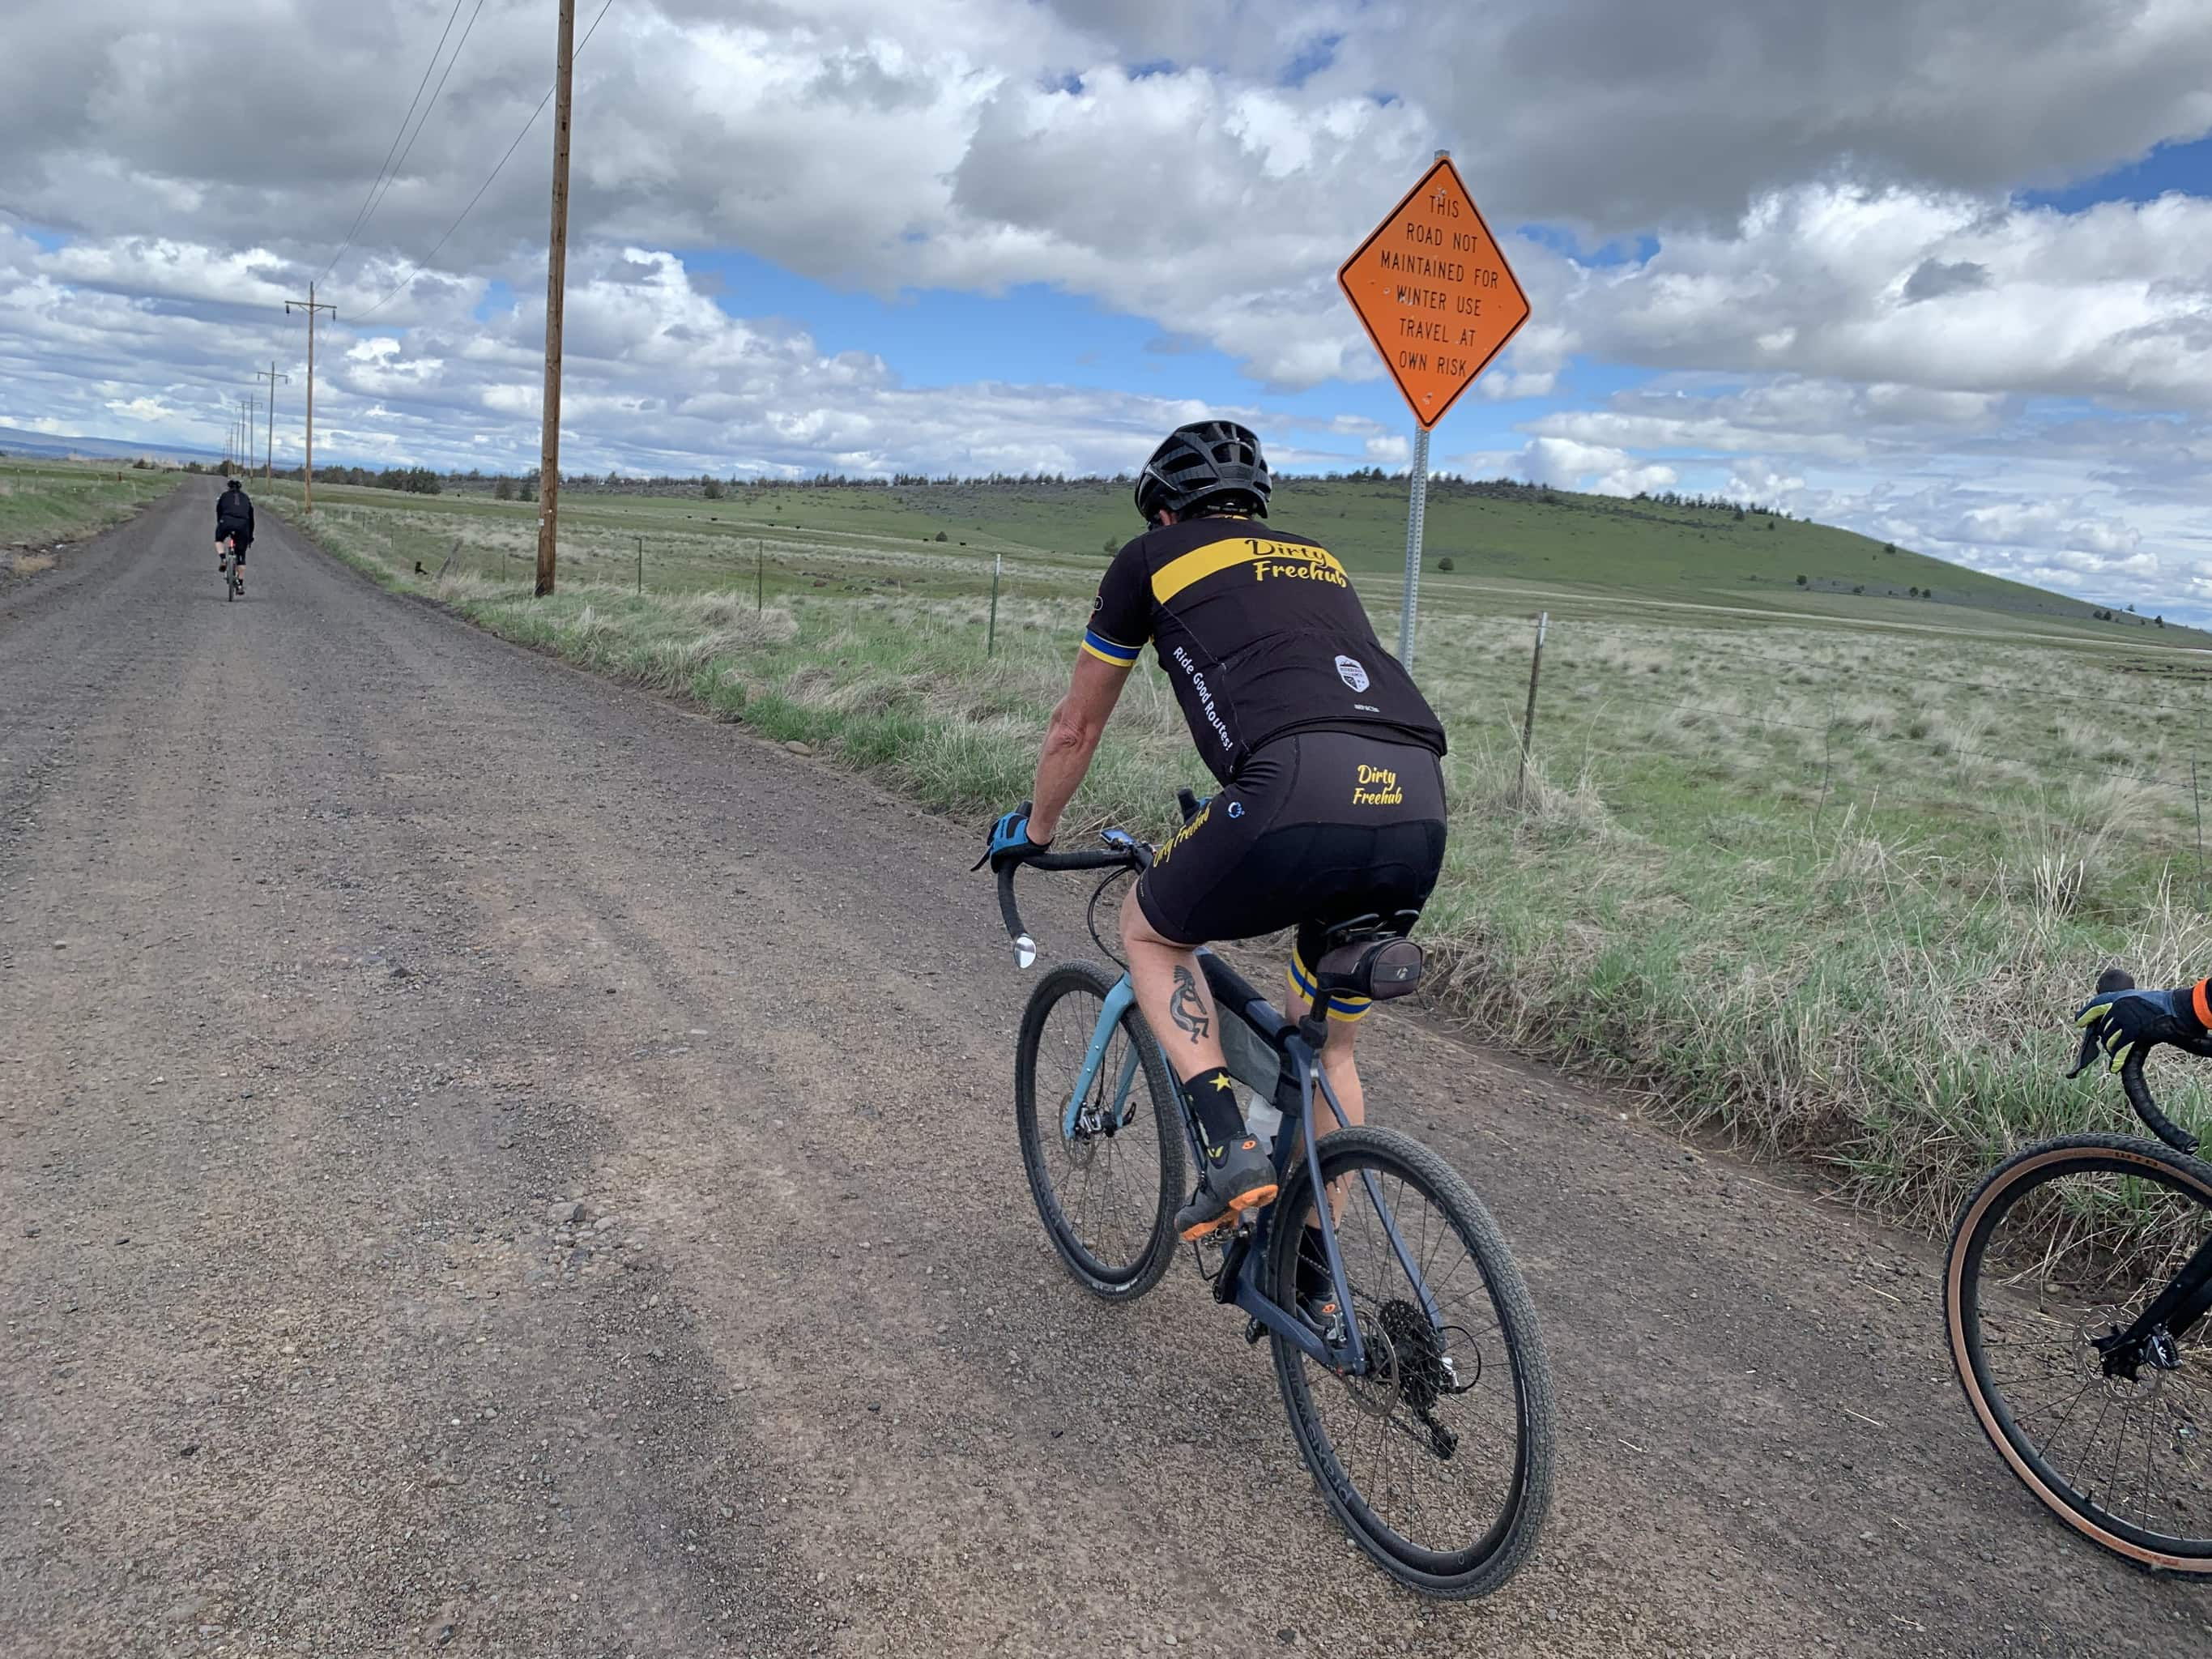 Cyclist on gravel road near the White River canyon.